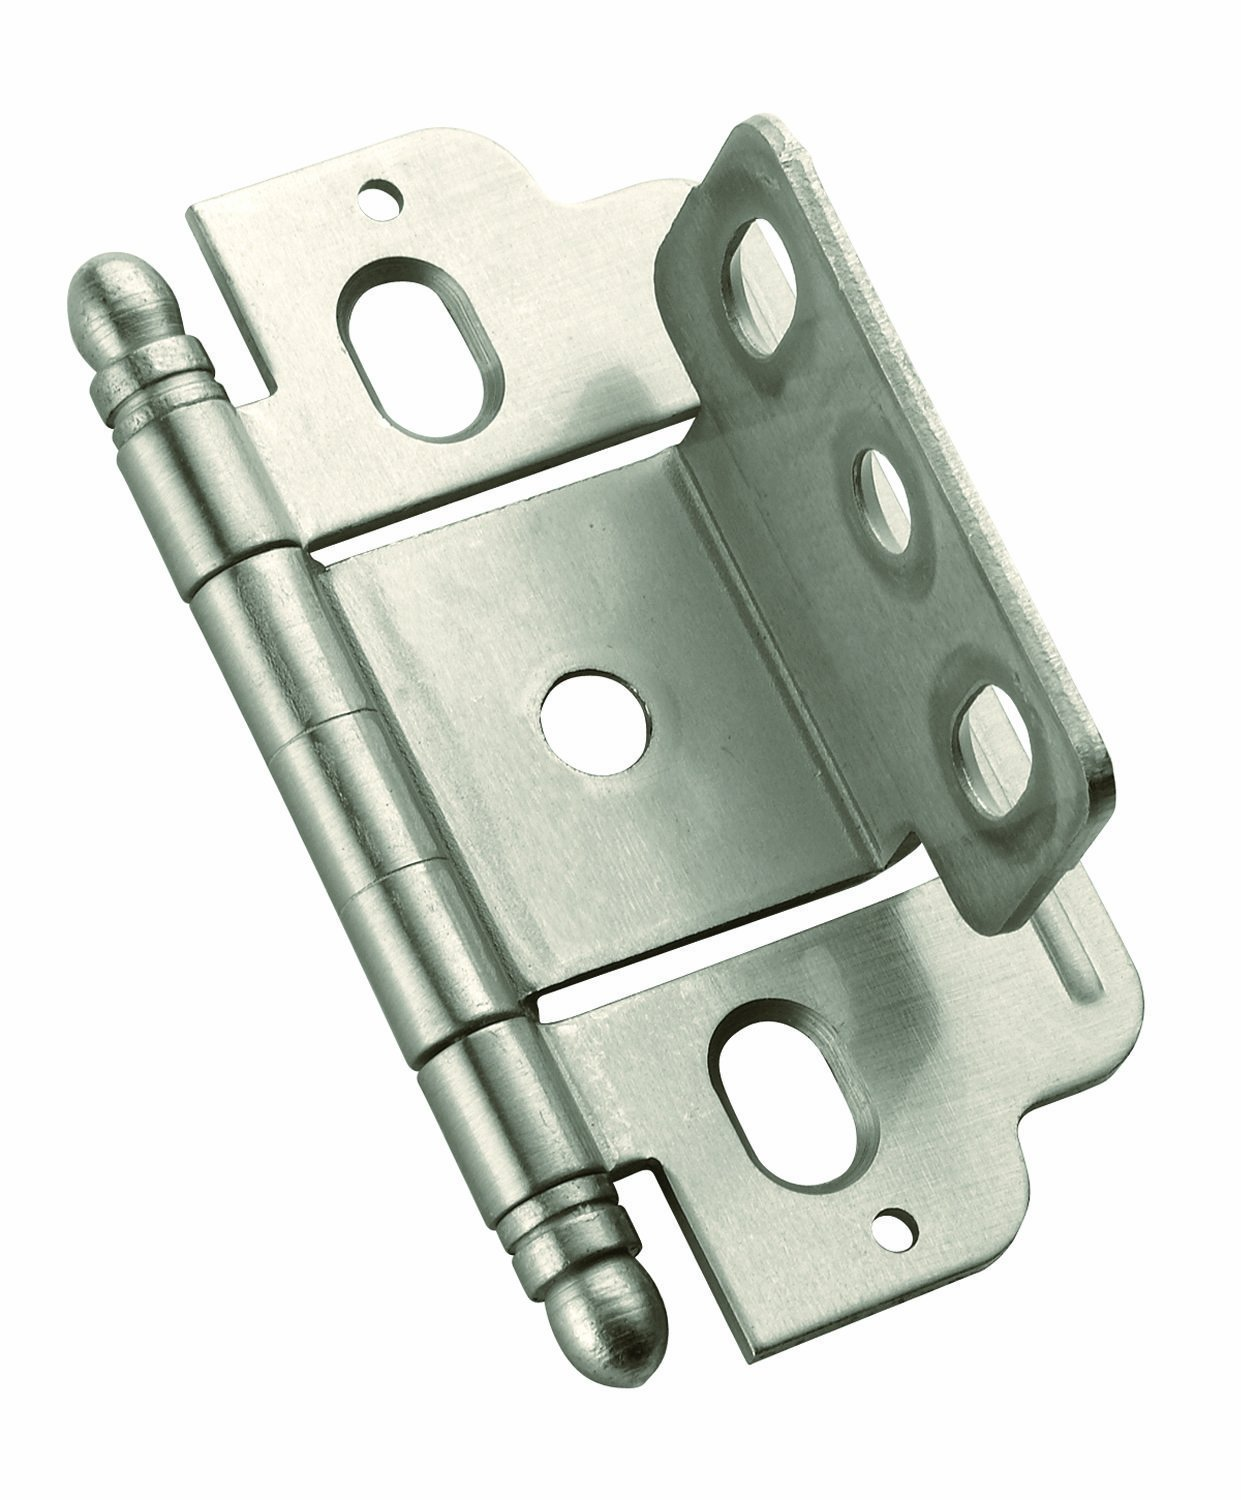 PK3180TBG10 Full Inset, Partial Wrap, Ball Tip Hinge With 3/4in(19mm) Door  Thick.   Satin Nickel, 3/4 In (19 Mm) Door Thick. Hinge By Amerock Ship  From US ...